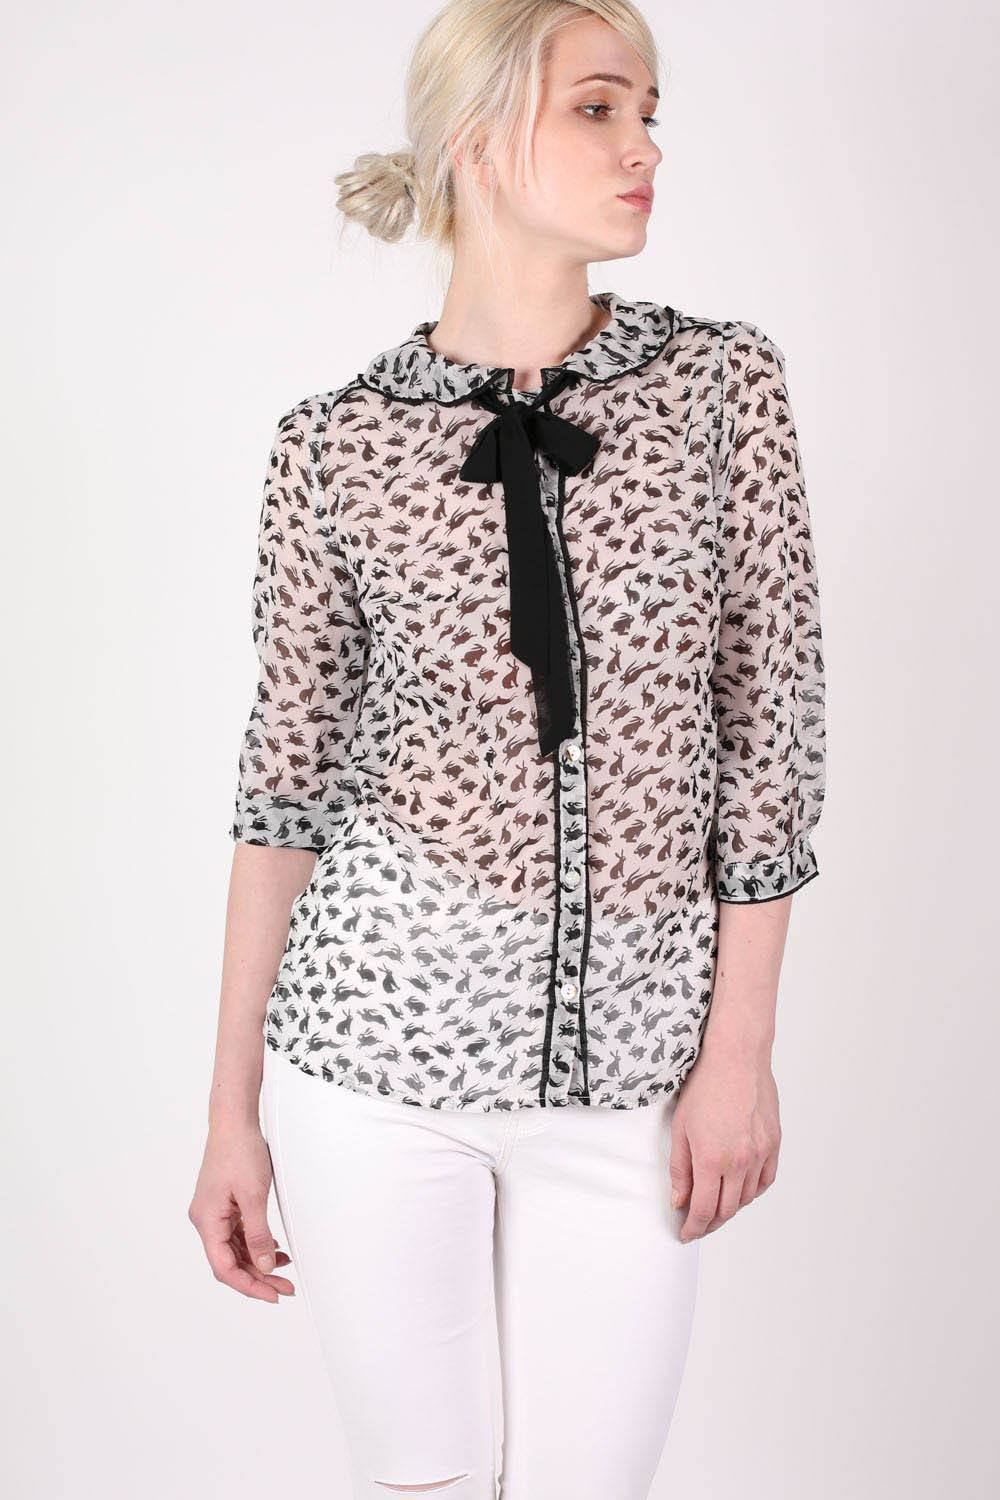 Rabbit Print Tie Bow Neck Chiffon Blouse in White MODEL FRONT